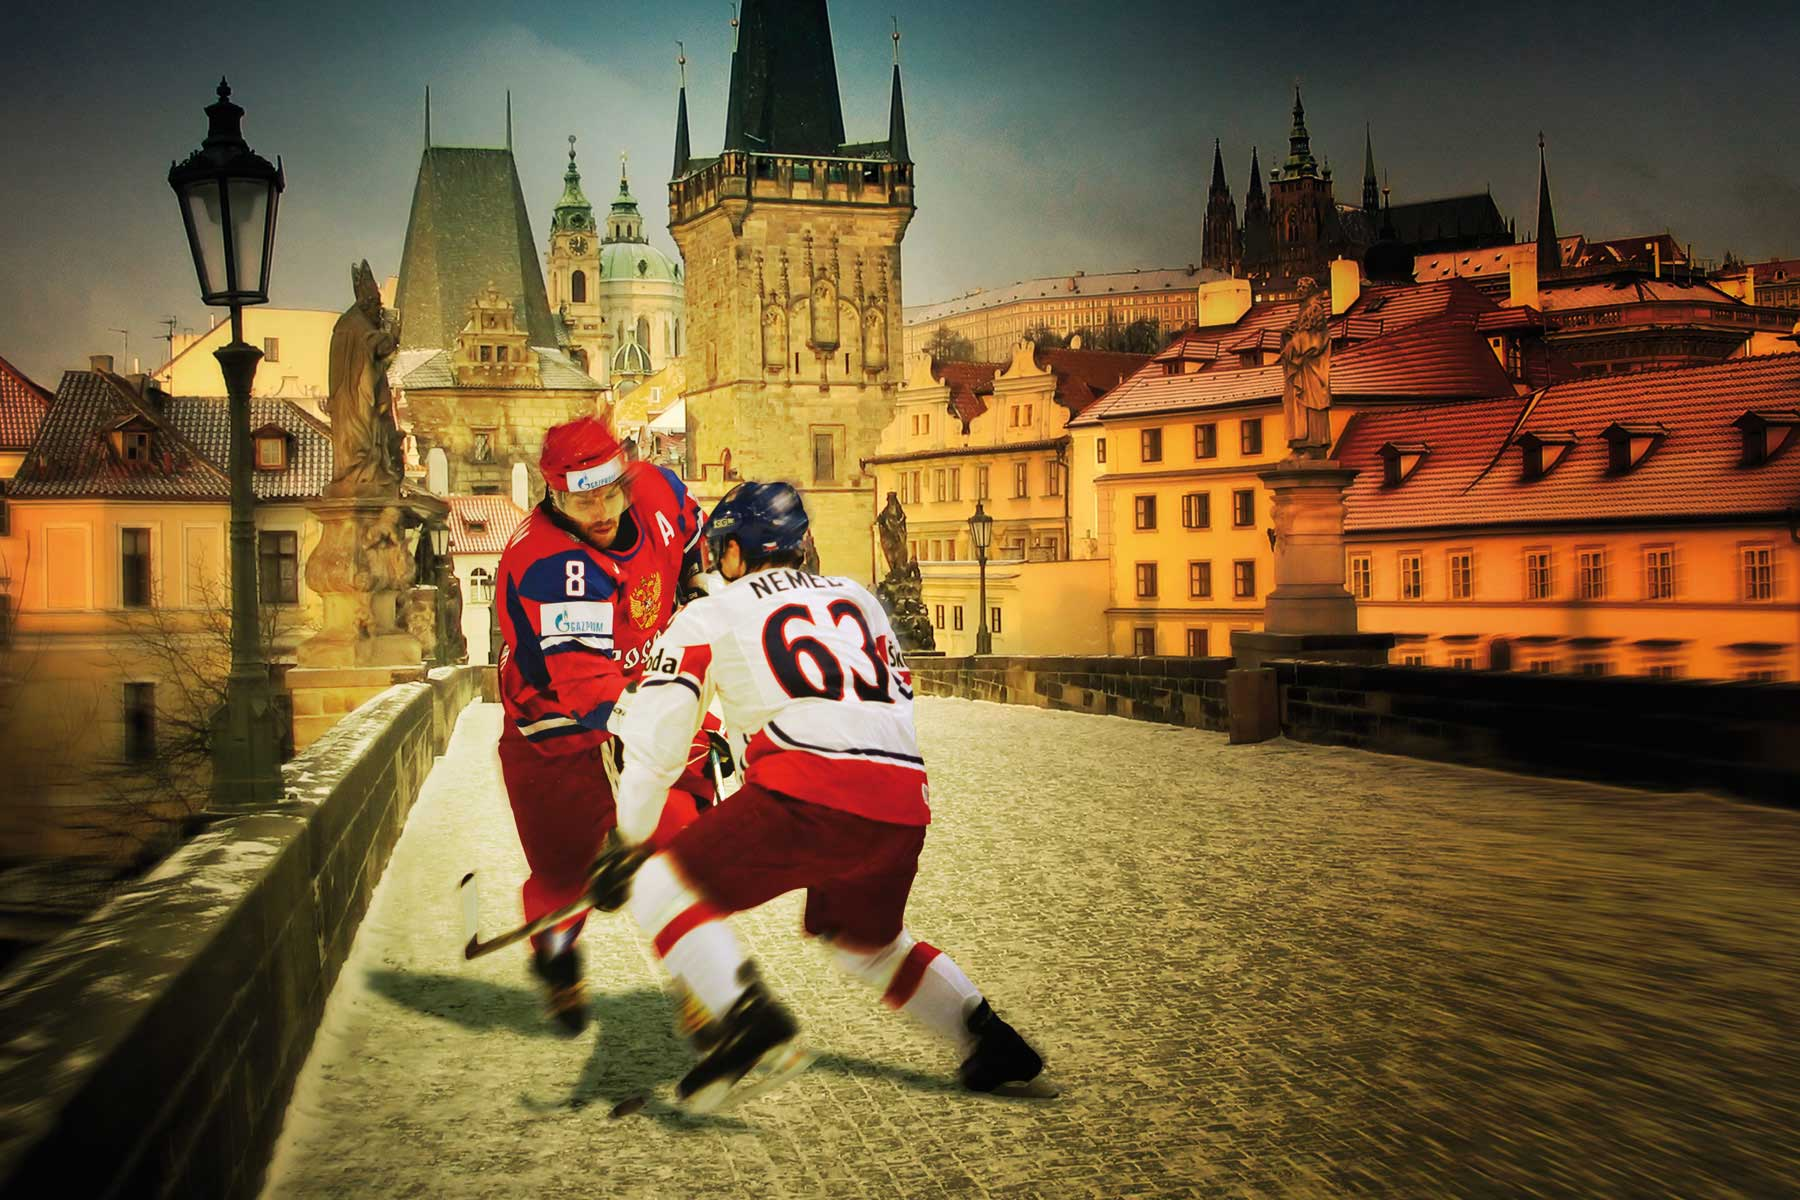 Ice hockey being big in the Czech Republic led us to create this image. The concept is designed to make the players feel as close to their environment as possible.